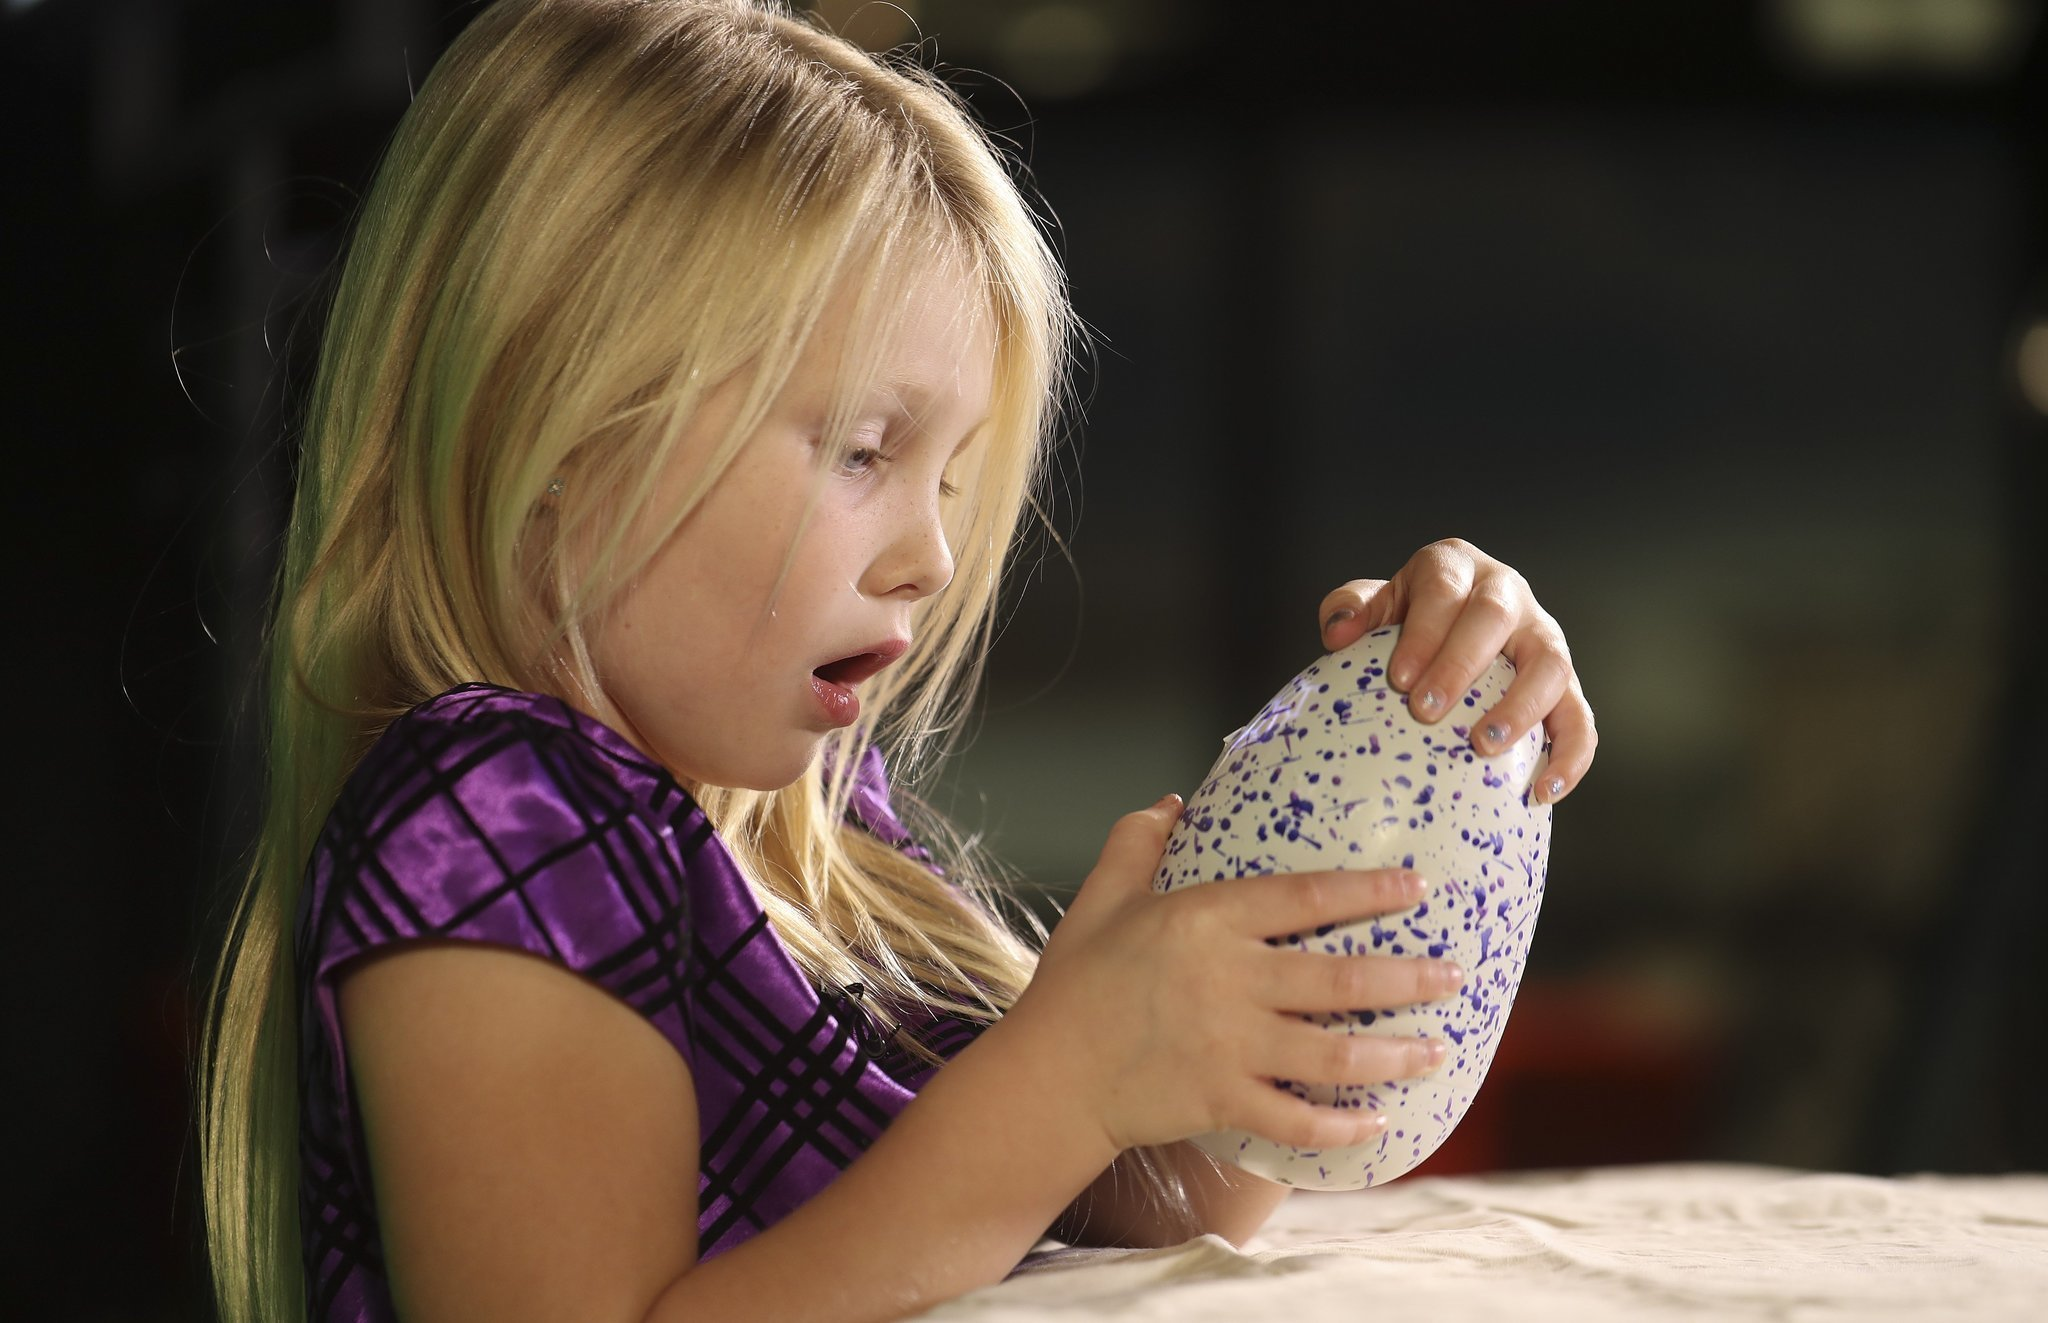 a500a6217ff What happens when a Hatchimal doesn t hatch - Chicago Tribune